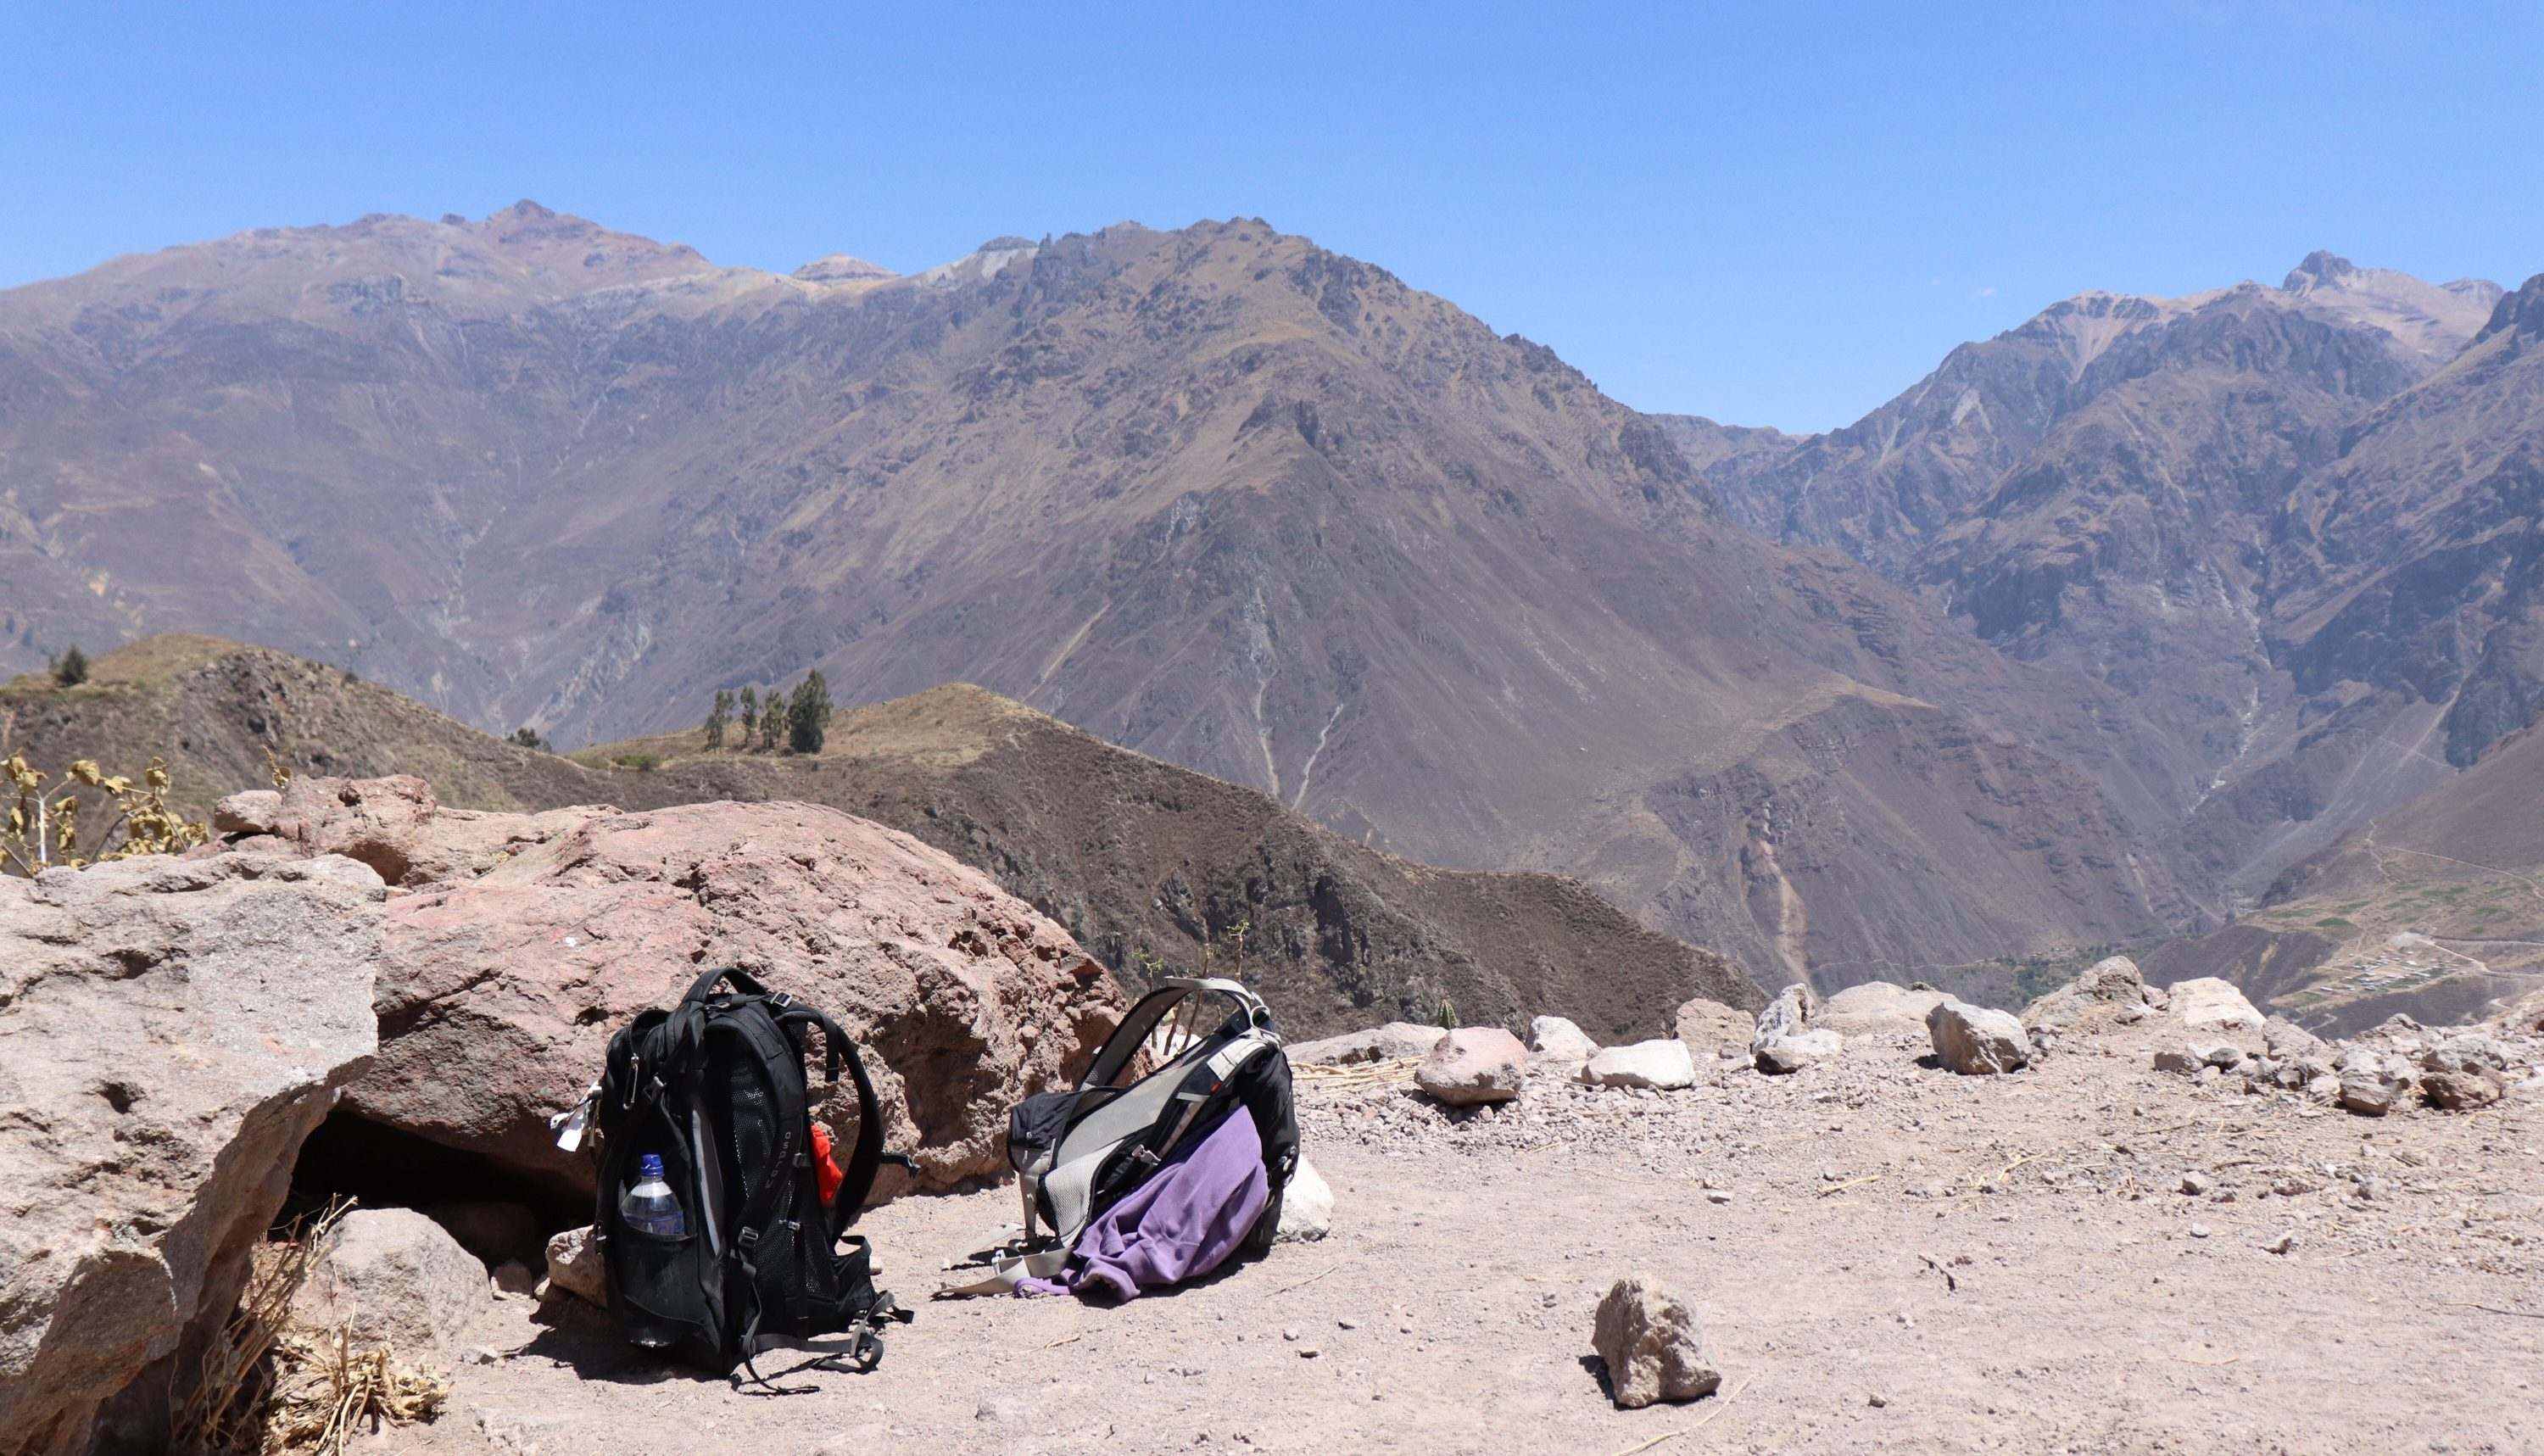 Our bags at the top of Colca Canyon